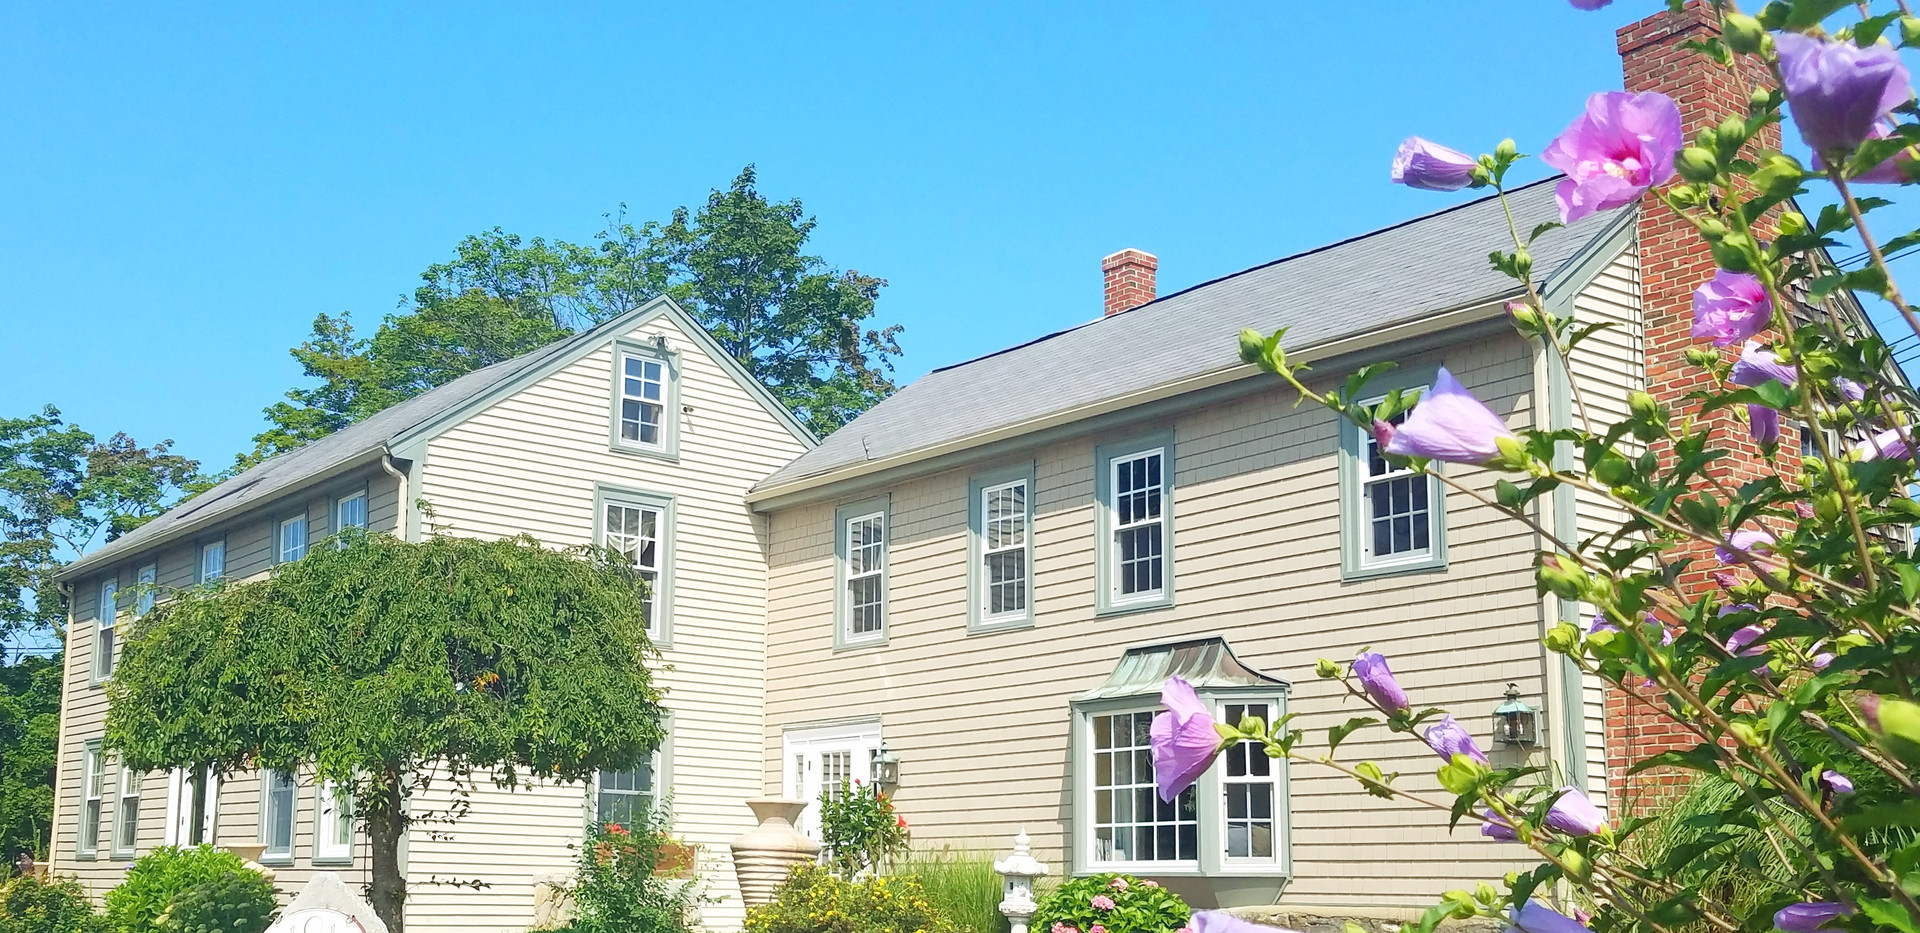 Our Spa is located in a renovated 1774 house. Once inside you will see we have transformed the building into a peacful retreat while maintaining many of the original features. Upper and lower parking is available.